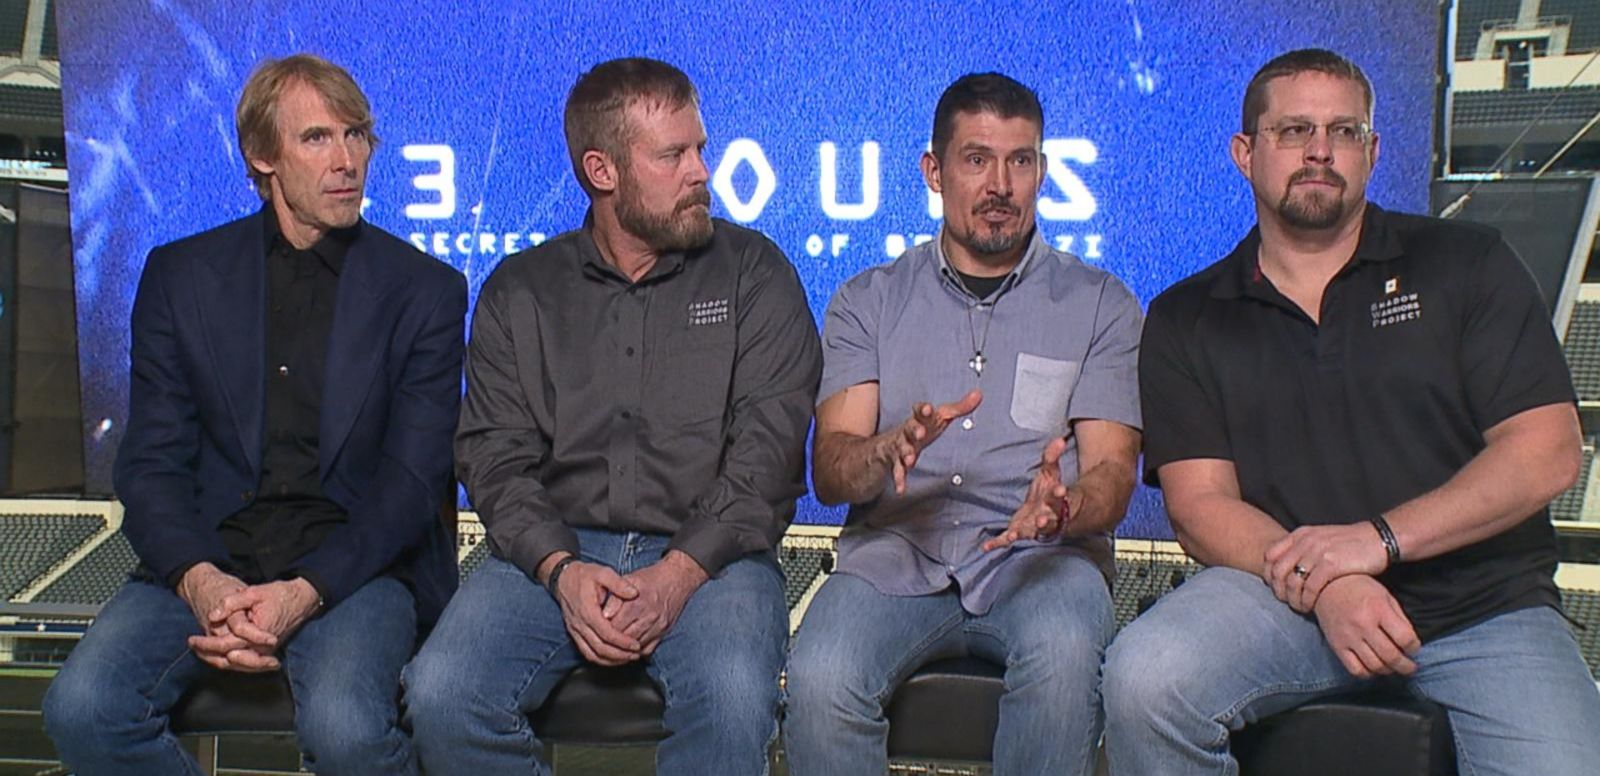 Secret Soldiers of Benghazi Discuss Real-Life Events Behind 13 Hours